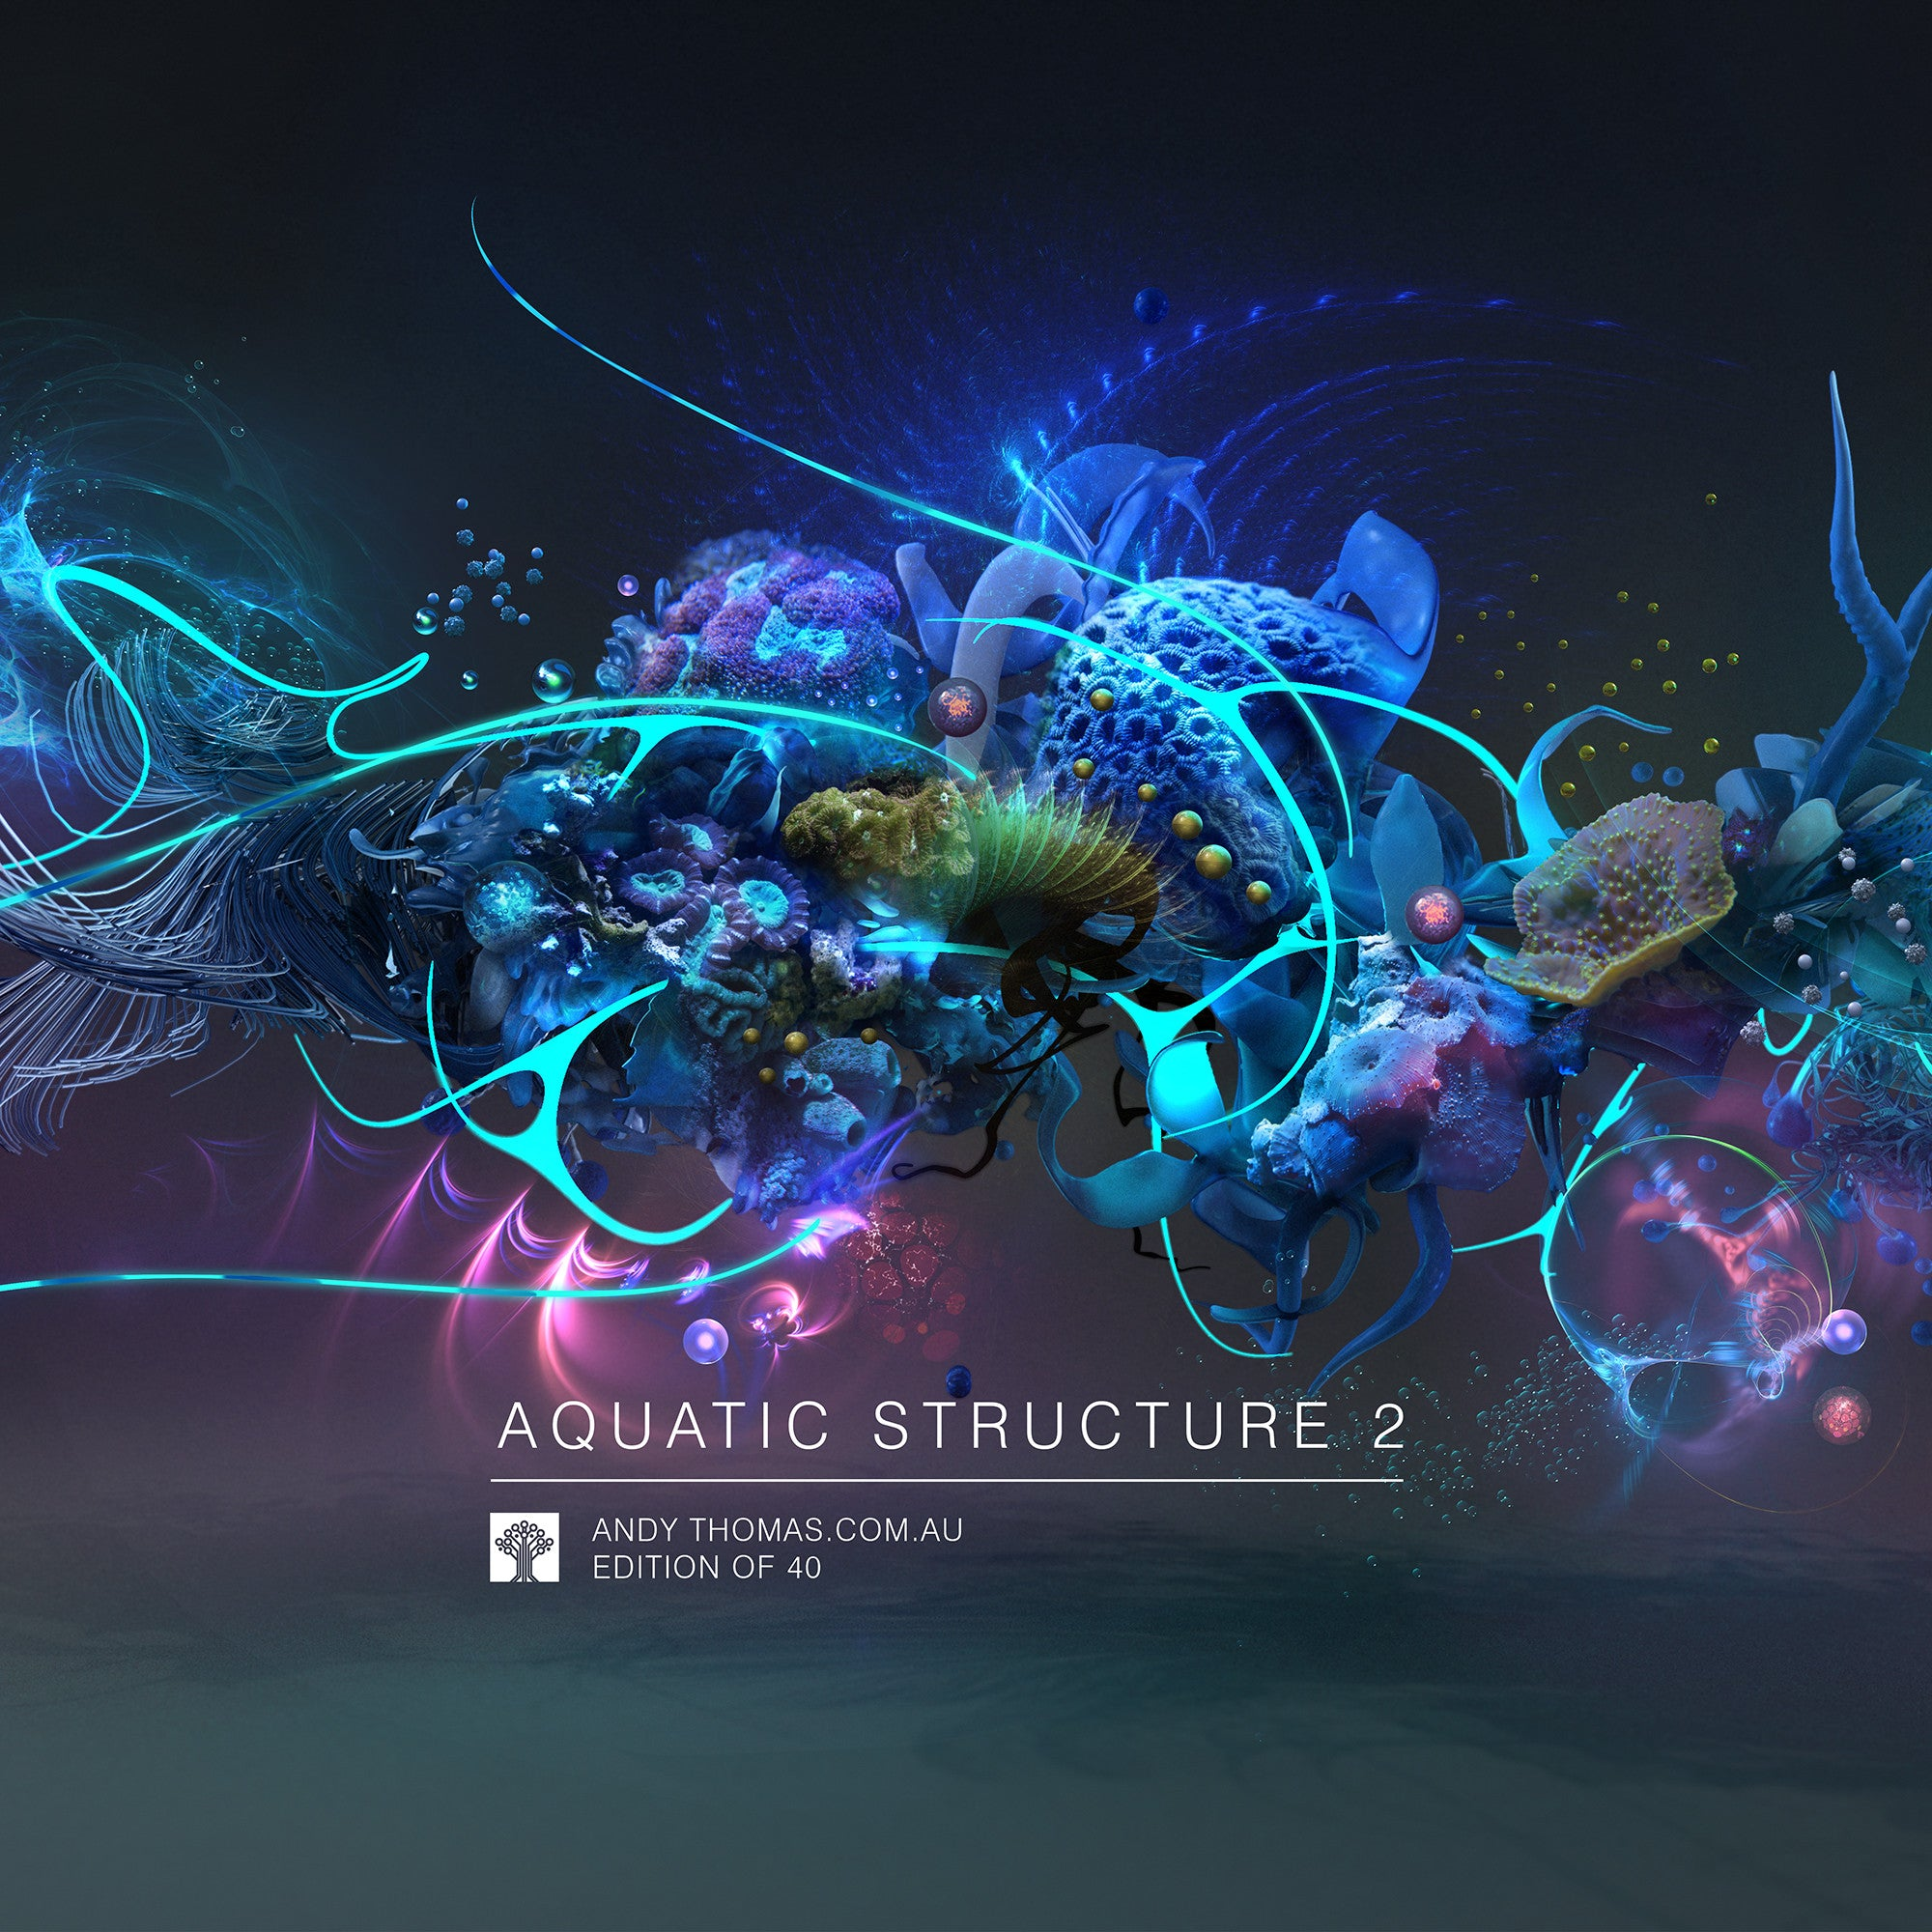 Aquatic Structure 2